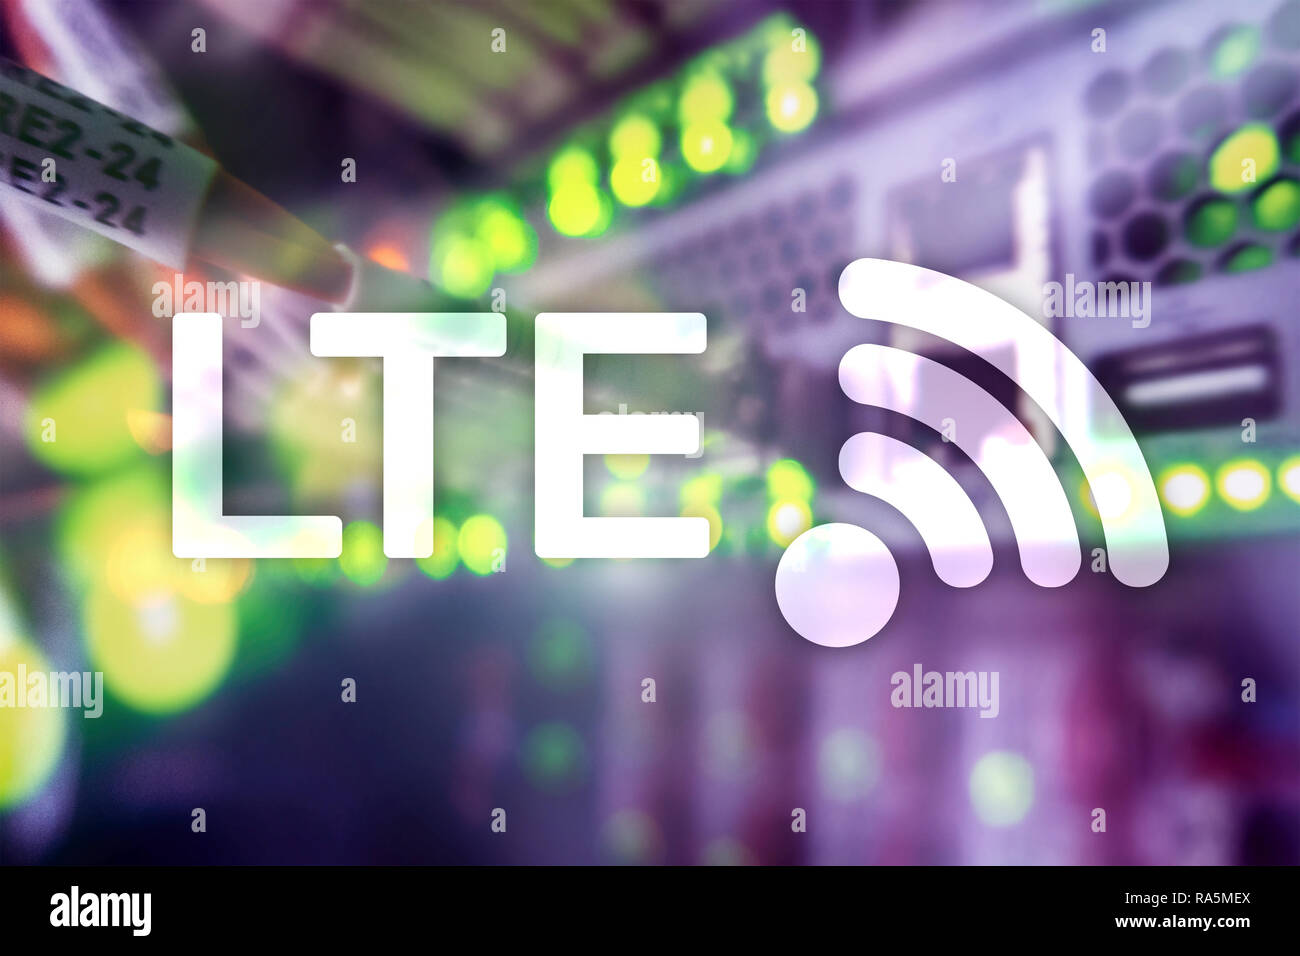 LTE, 5g wireless internet technology concept. 4G connected - Stock Image